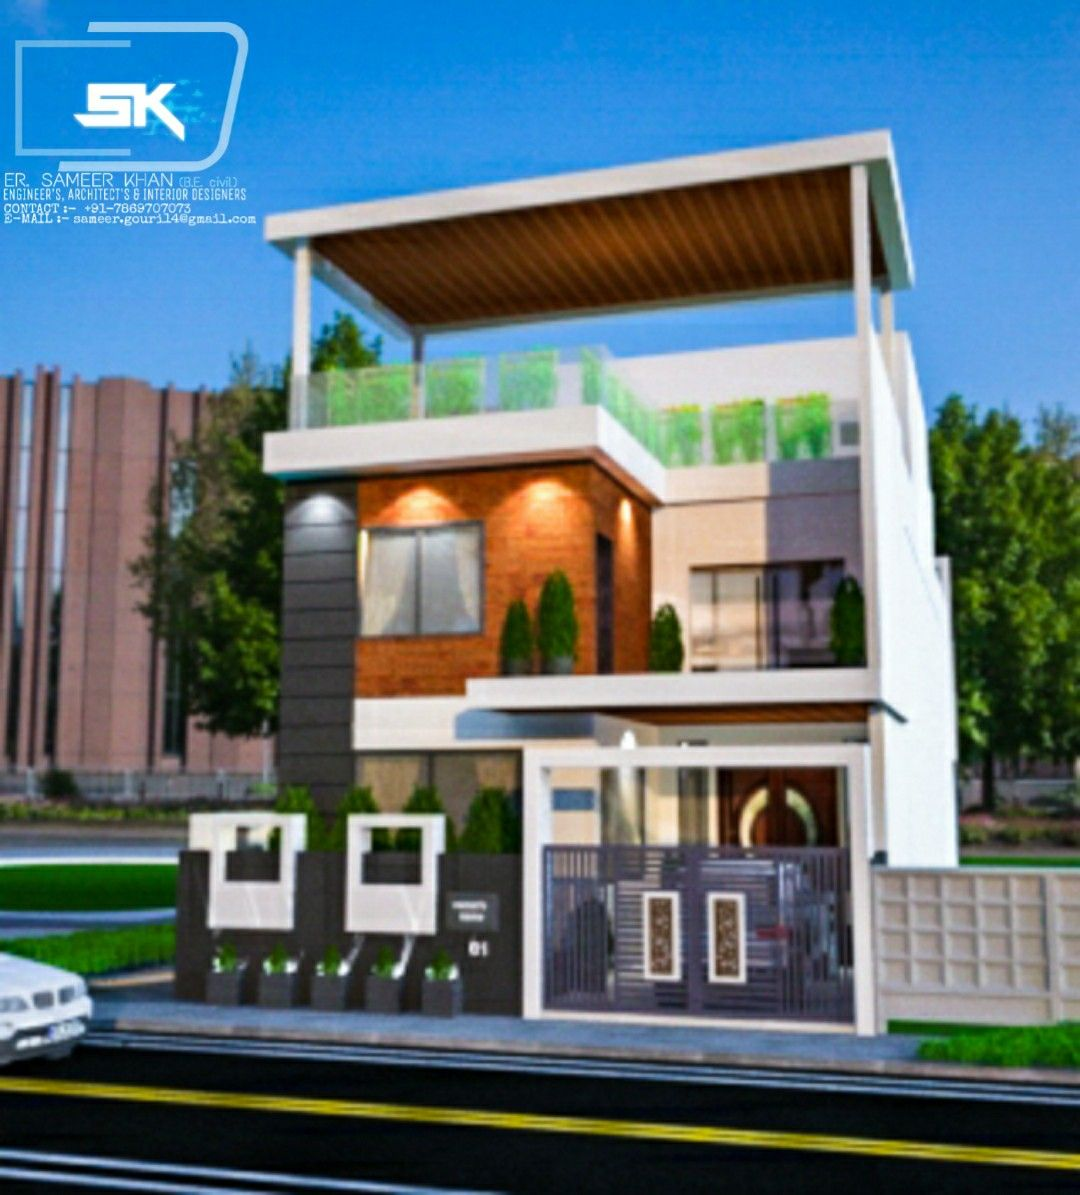 Unique Home Exterior Design: Introducing Modern House Exterior Elevation Of G+1 House